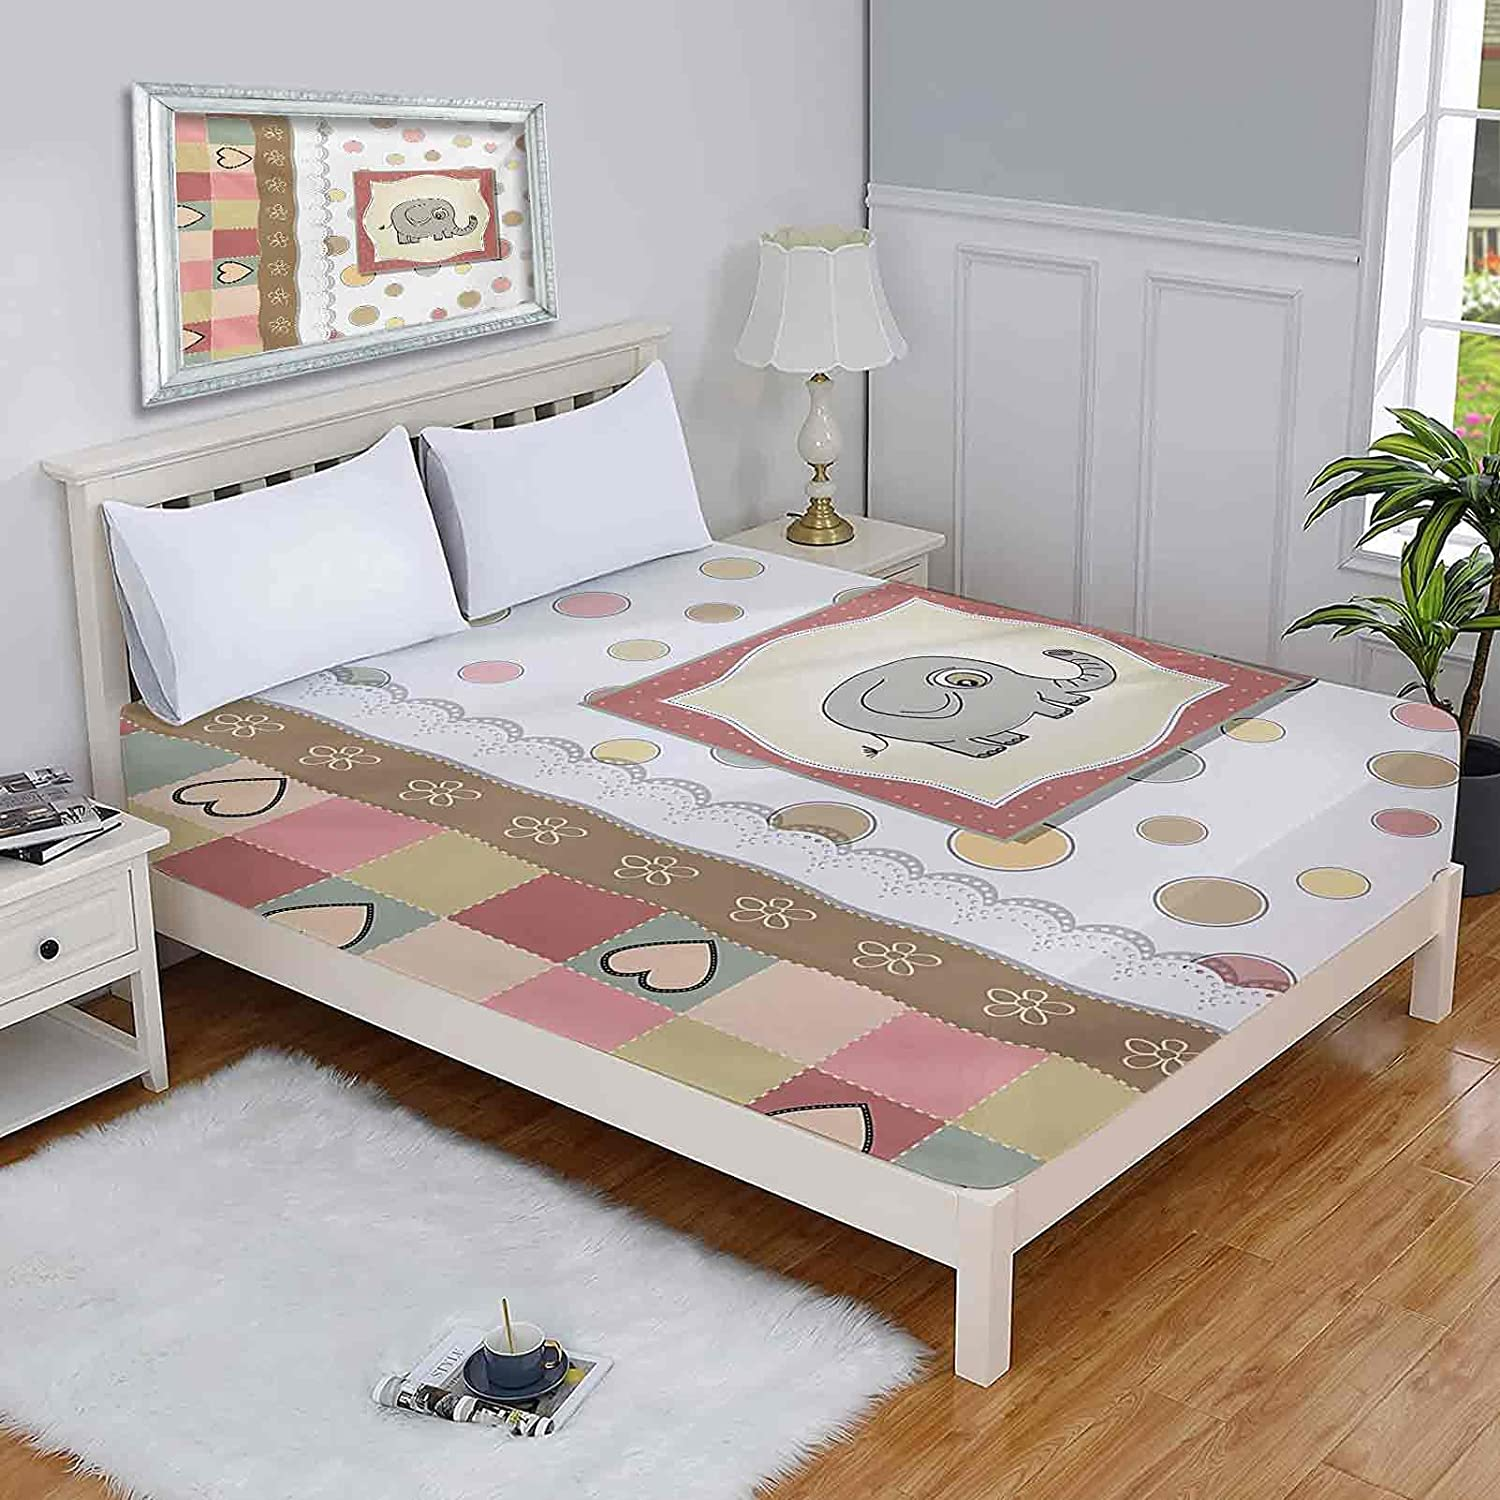 Nursery Full Fitted Bed Sheets low-pricing Romantic Vintage Composition of Chicago Mall